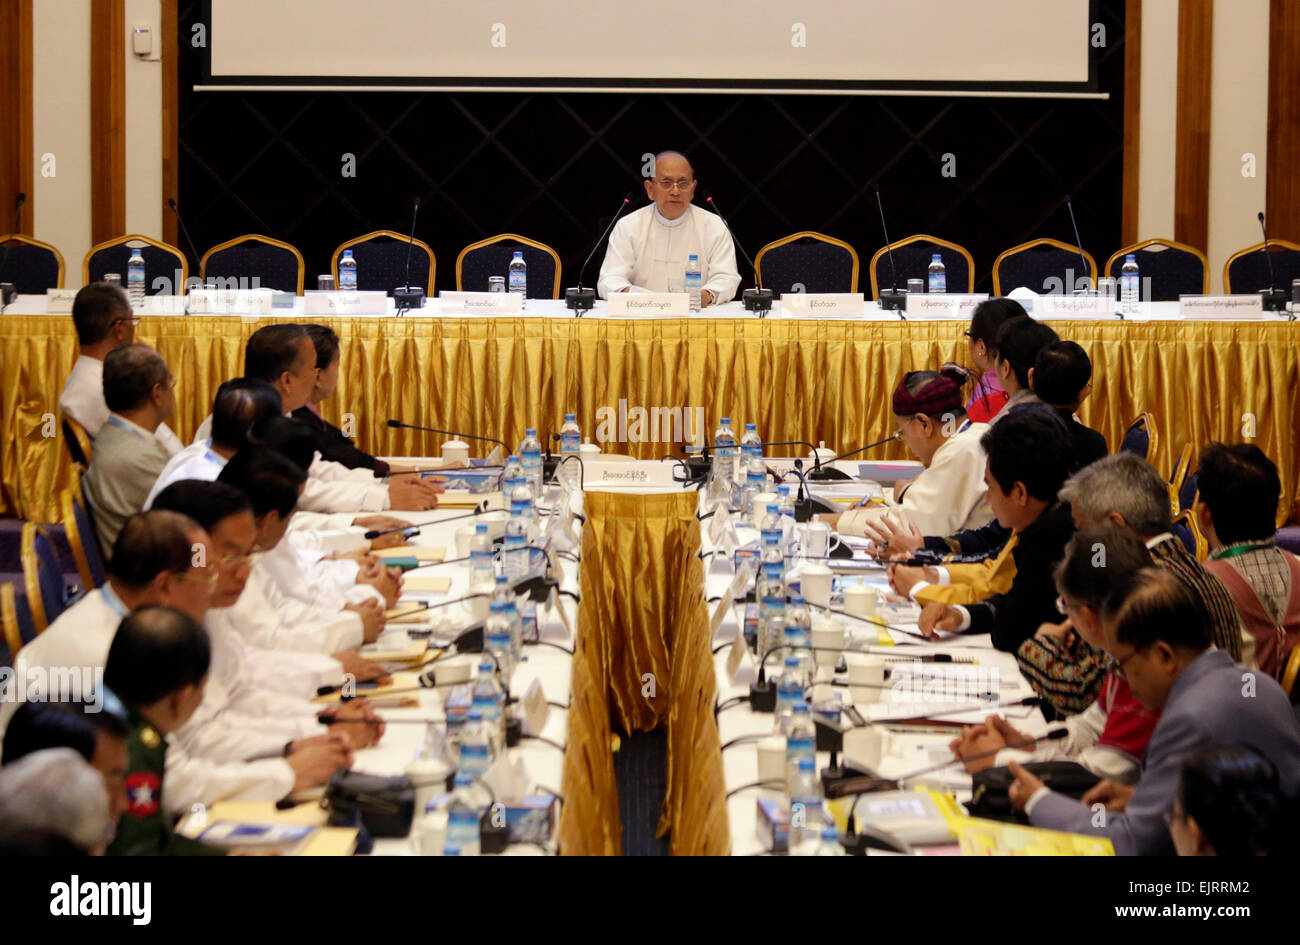 (150331) --YANGON, March 31, 2015 (Xinhua) -- Myanmar President U Thein Sein (C) delivers a speech during a signing - Stock Image